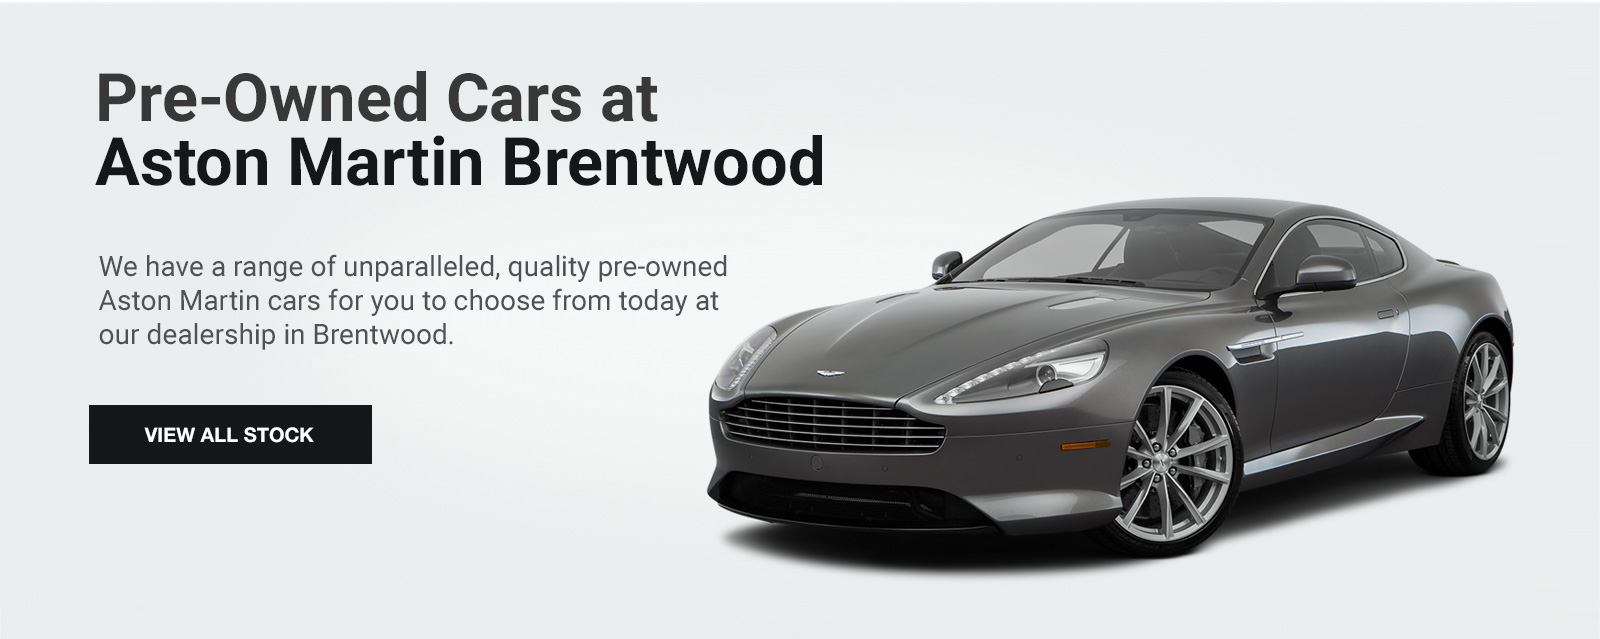 Pre-Owned Cars at Aston Martin Brentwood